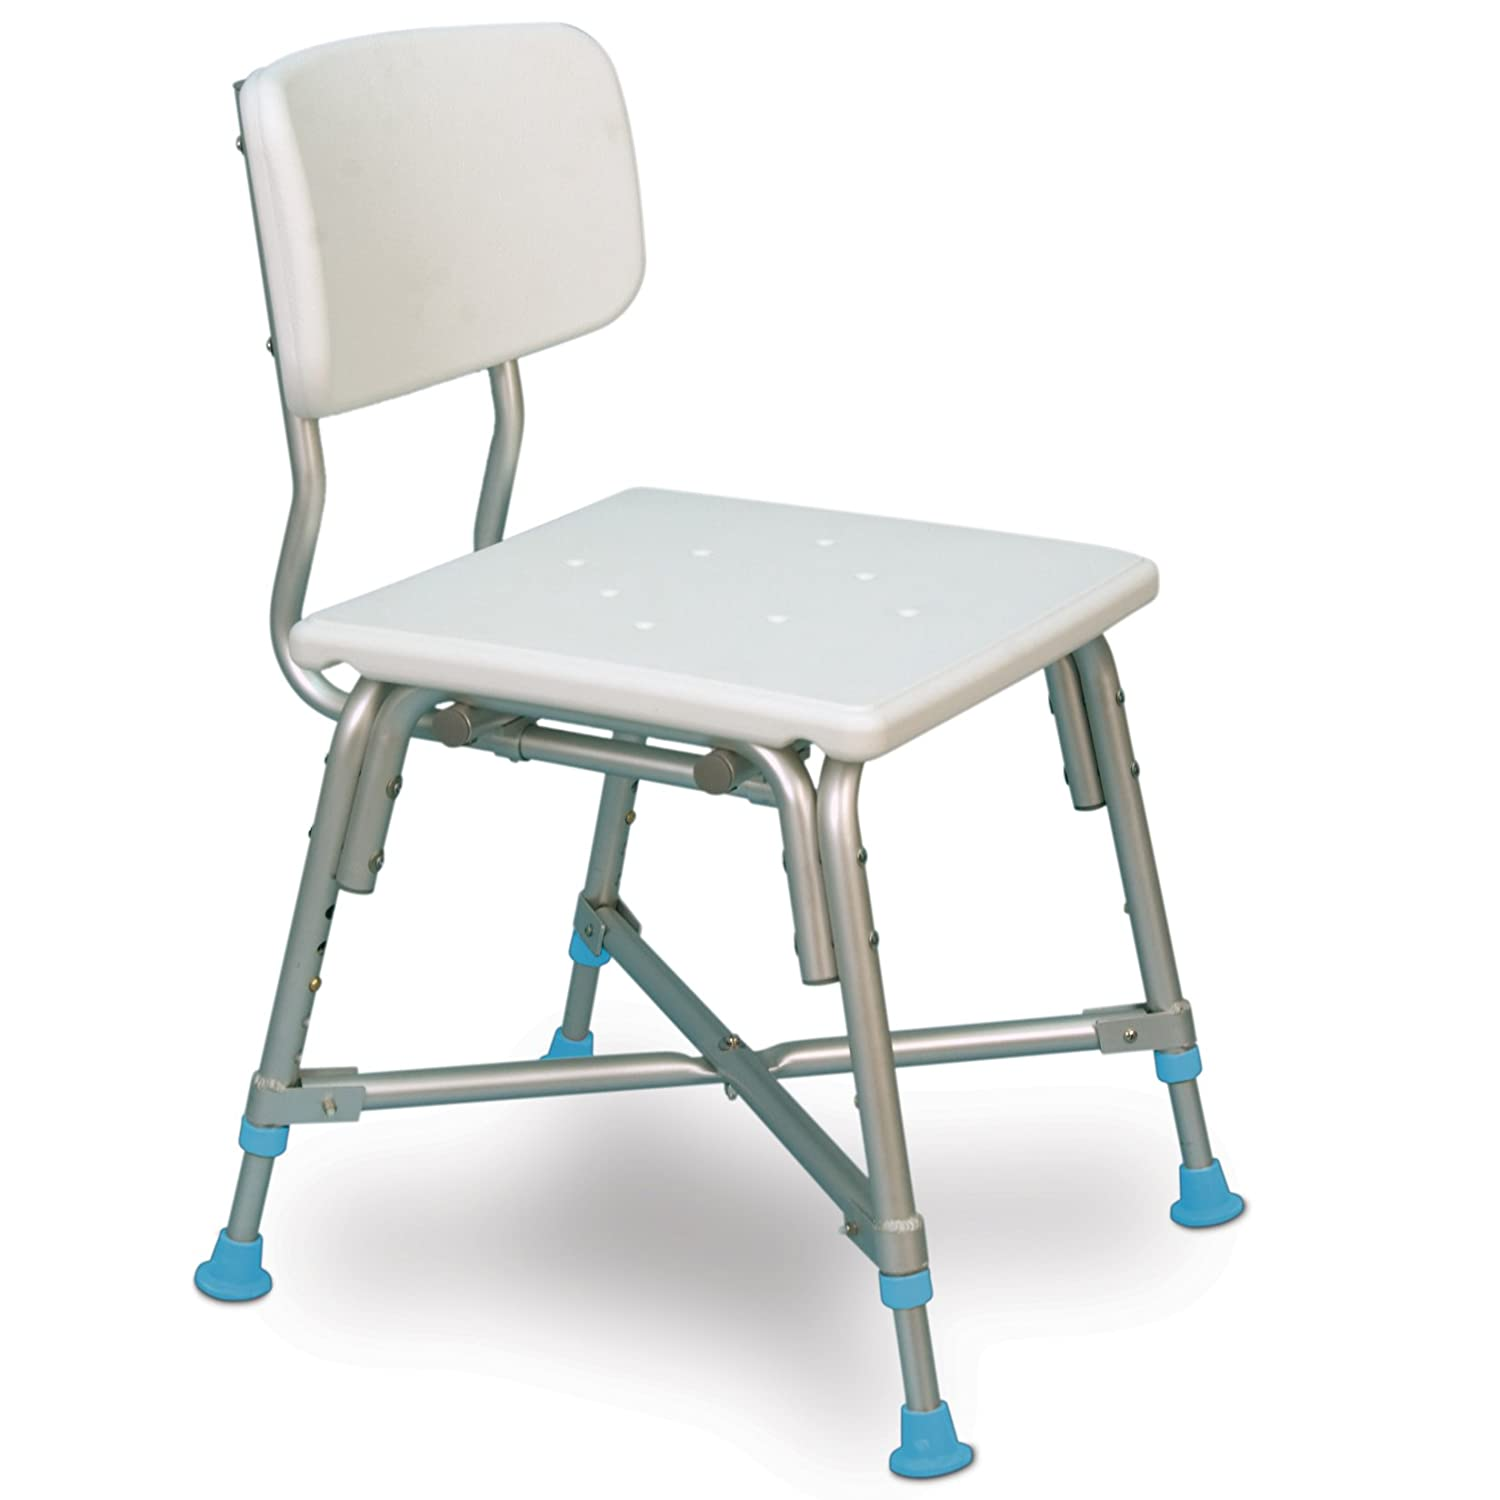 The Best Heavy Duty Shower Chairs For Overweight People